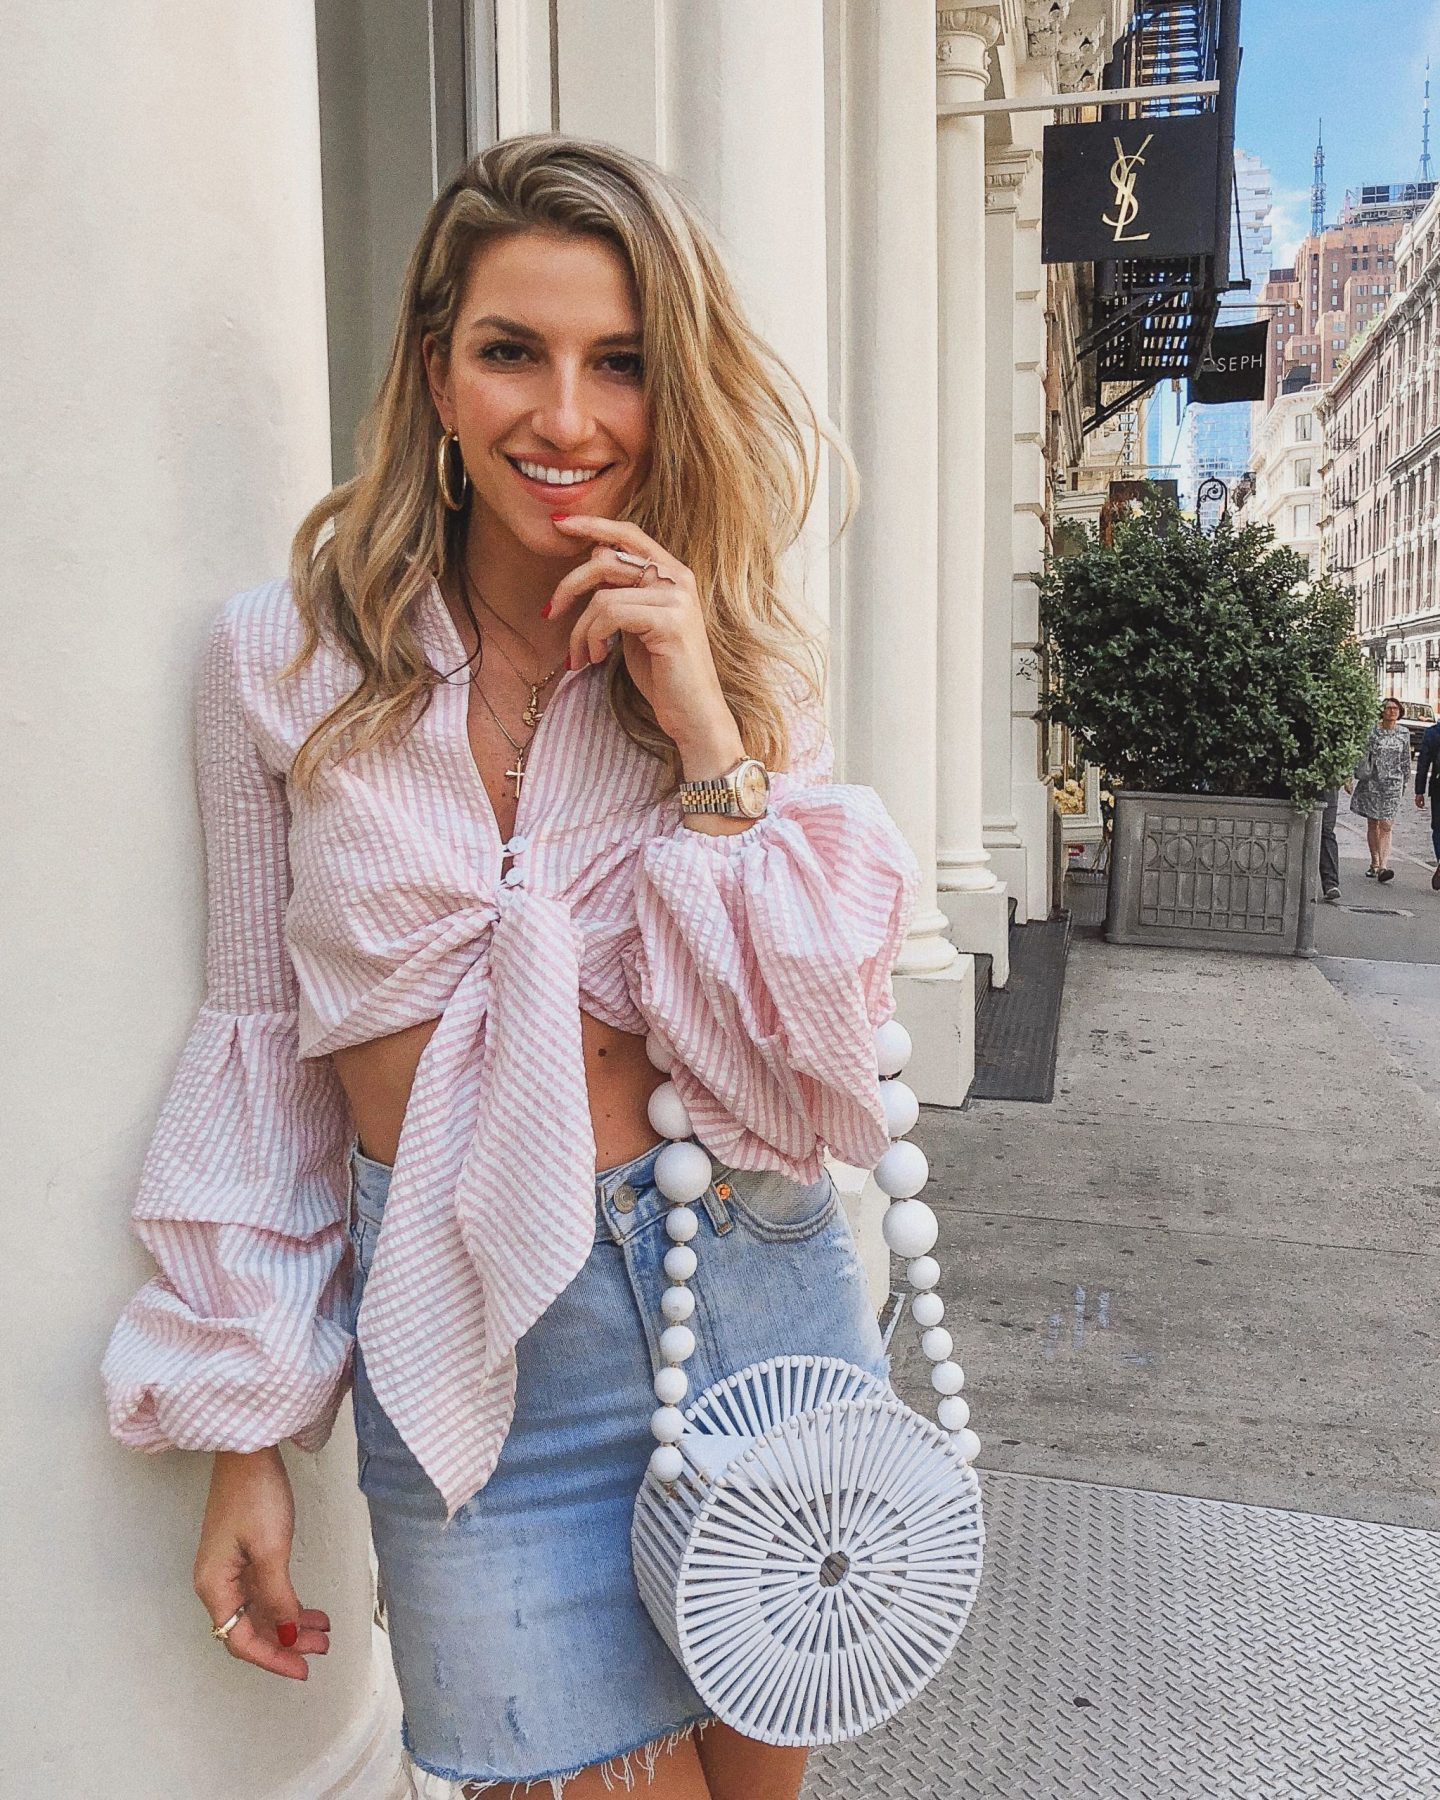 Cassandra DiMicco, Cass DiMicco, Dressed For Dreams, NYC, New York City, New York, Street Style NYC, Street Style 2018, NYC Street Style Street Style Outfits, 2018 Trends, NYC Fashion Blogger, Petersyn top, striped tie front top, ruffle sleeves top, cult Gaia bag, cult Gaia, denim skirt